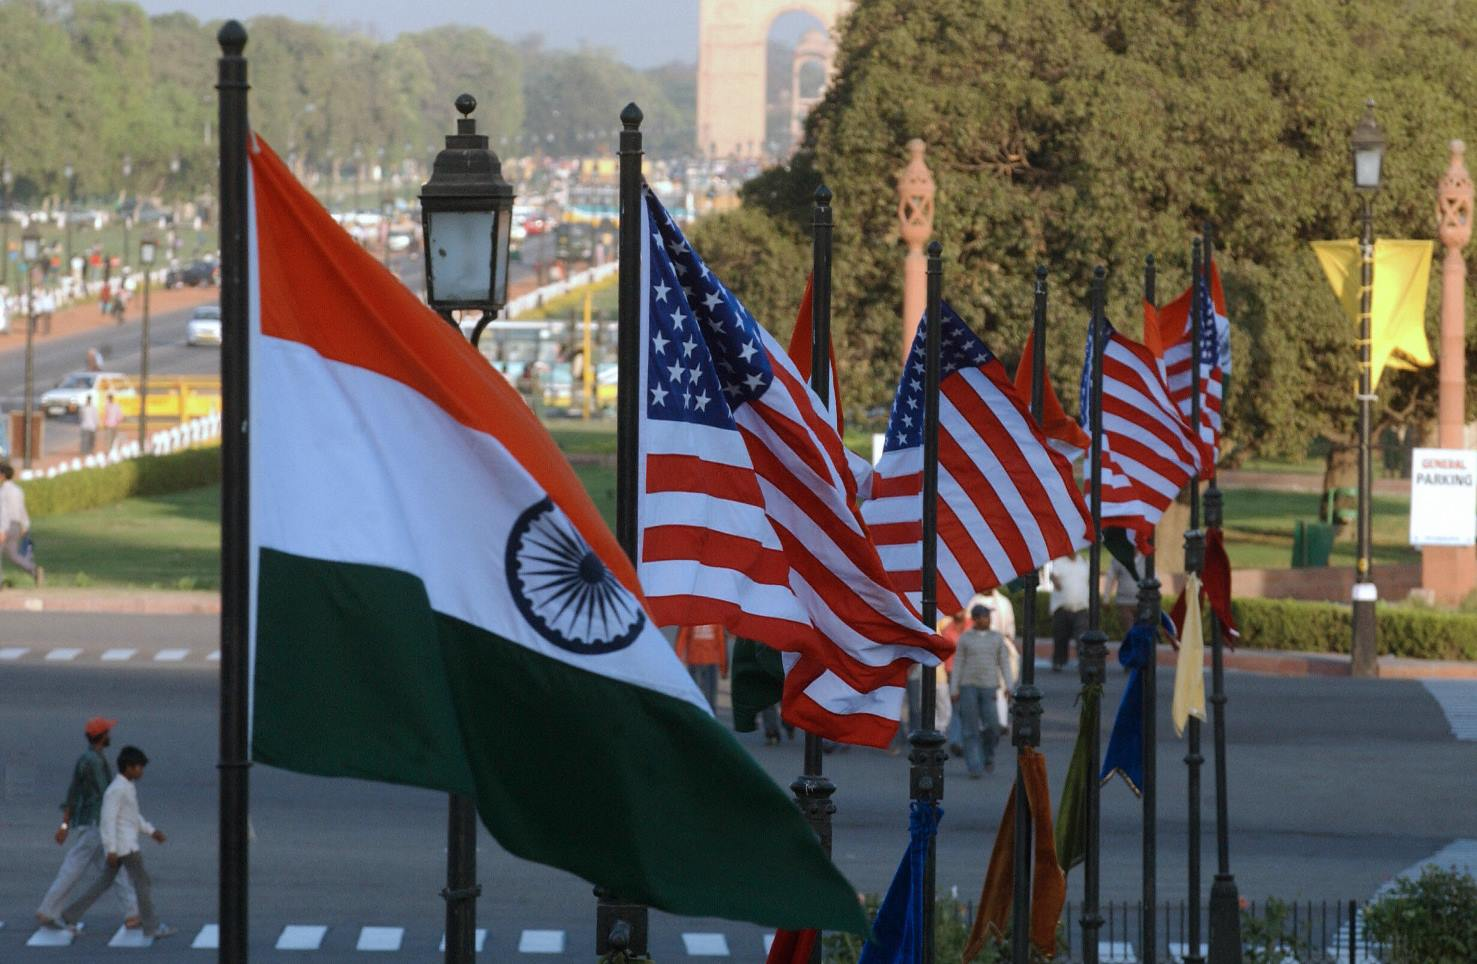 The report includes a rather surprising fact; Indian-Americans born in the United States are much more likely to report being victims of discrimination than their foreign-born counterparts.